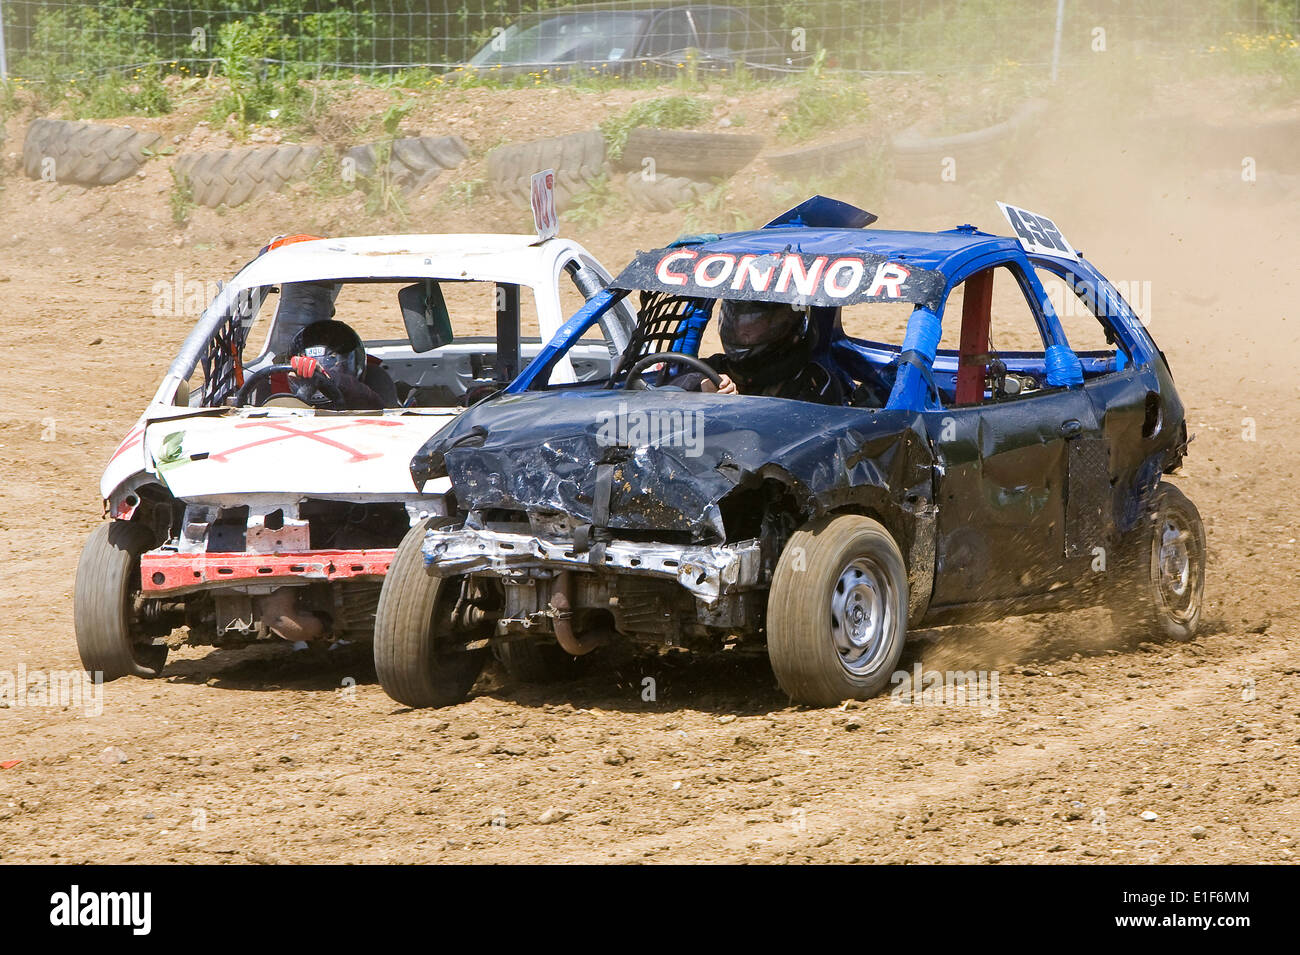 Banger Racing Cars In Action At Stansted Raceway In Essex Uk Stock